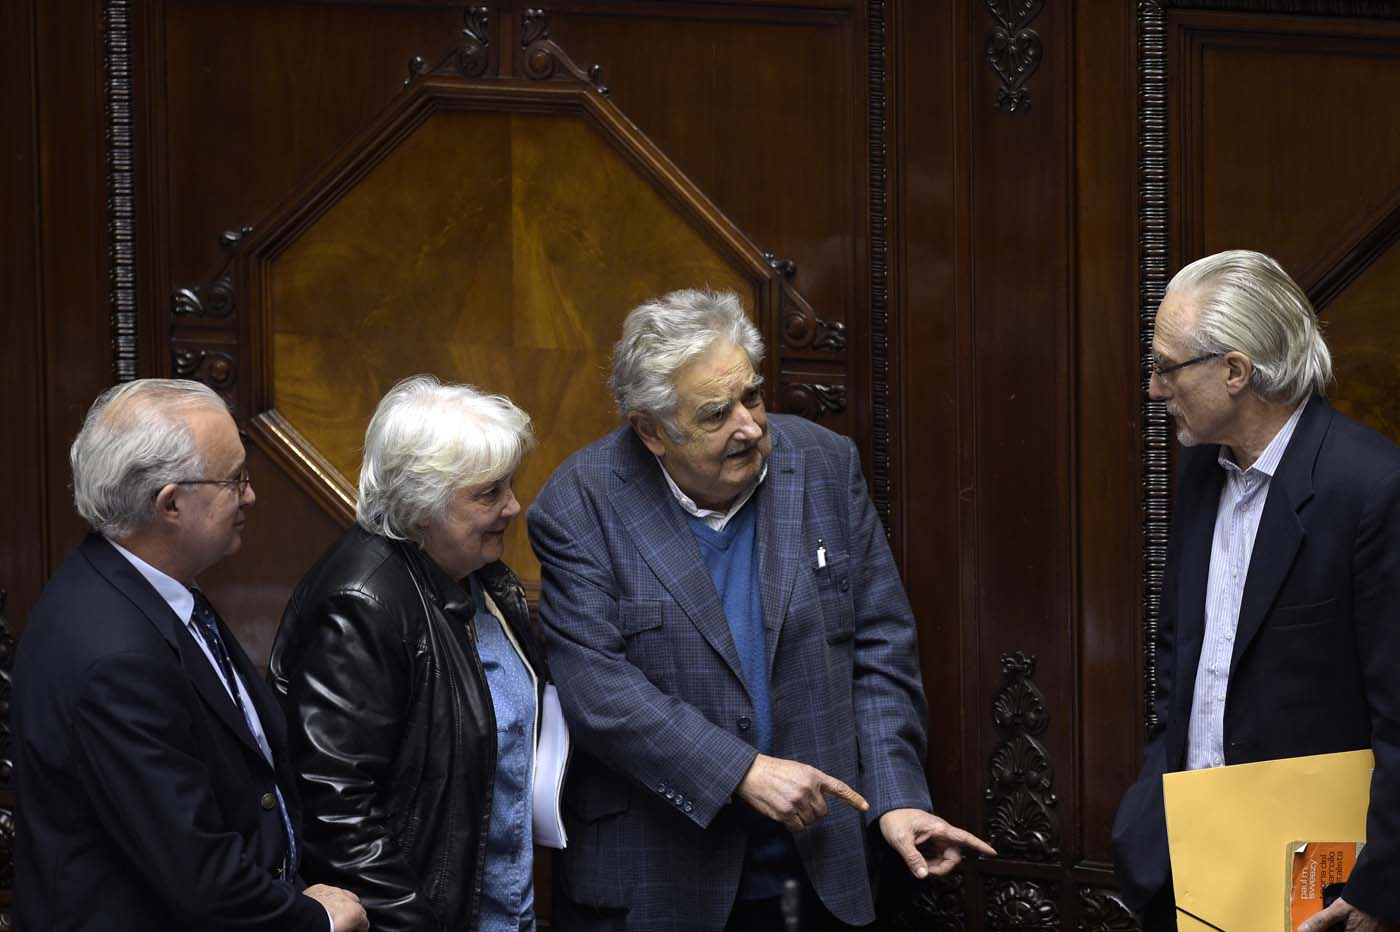 Uruguay's new vice-president Lucia Topolansky (2nd-L), accompanied by her husband, senator and former president Jode Mujica (2nd-R), talk with fellow lawmakers after her swearing-in ceremony in Montevideo, on September 13, 2017. Topolansky replaces Raul Sendic, who resigned on Saturday over allegations he used public money for personal shopping. / AFP PHOTO / MIGUEL ROJO